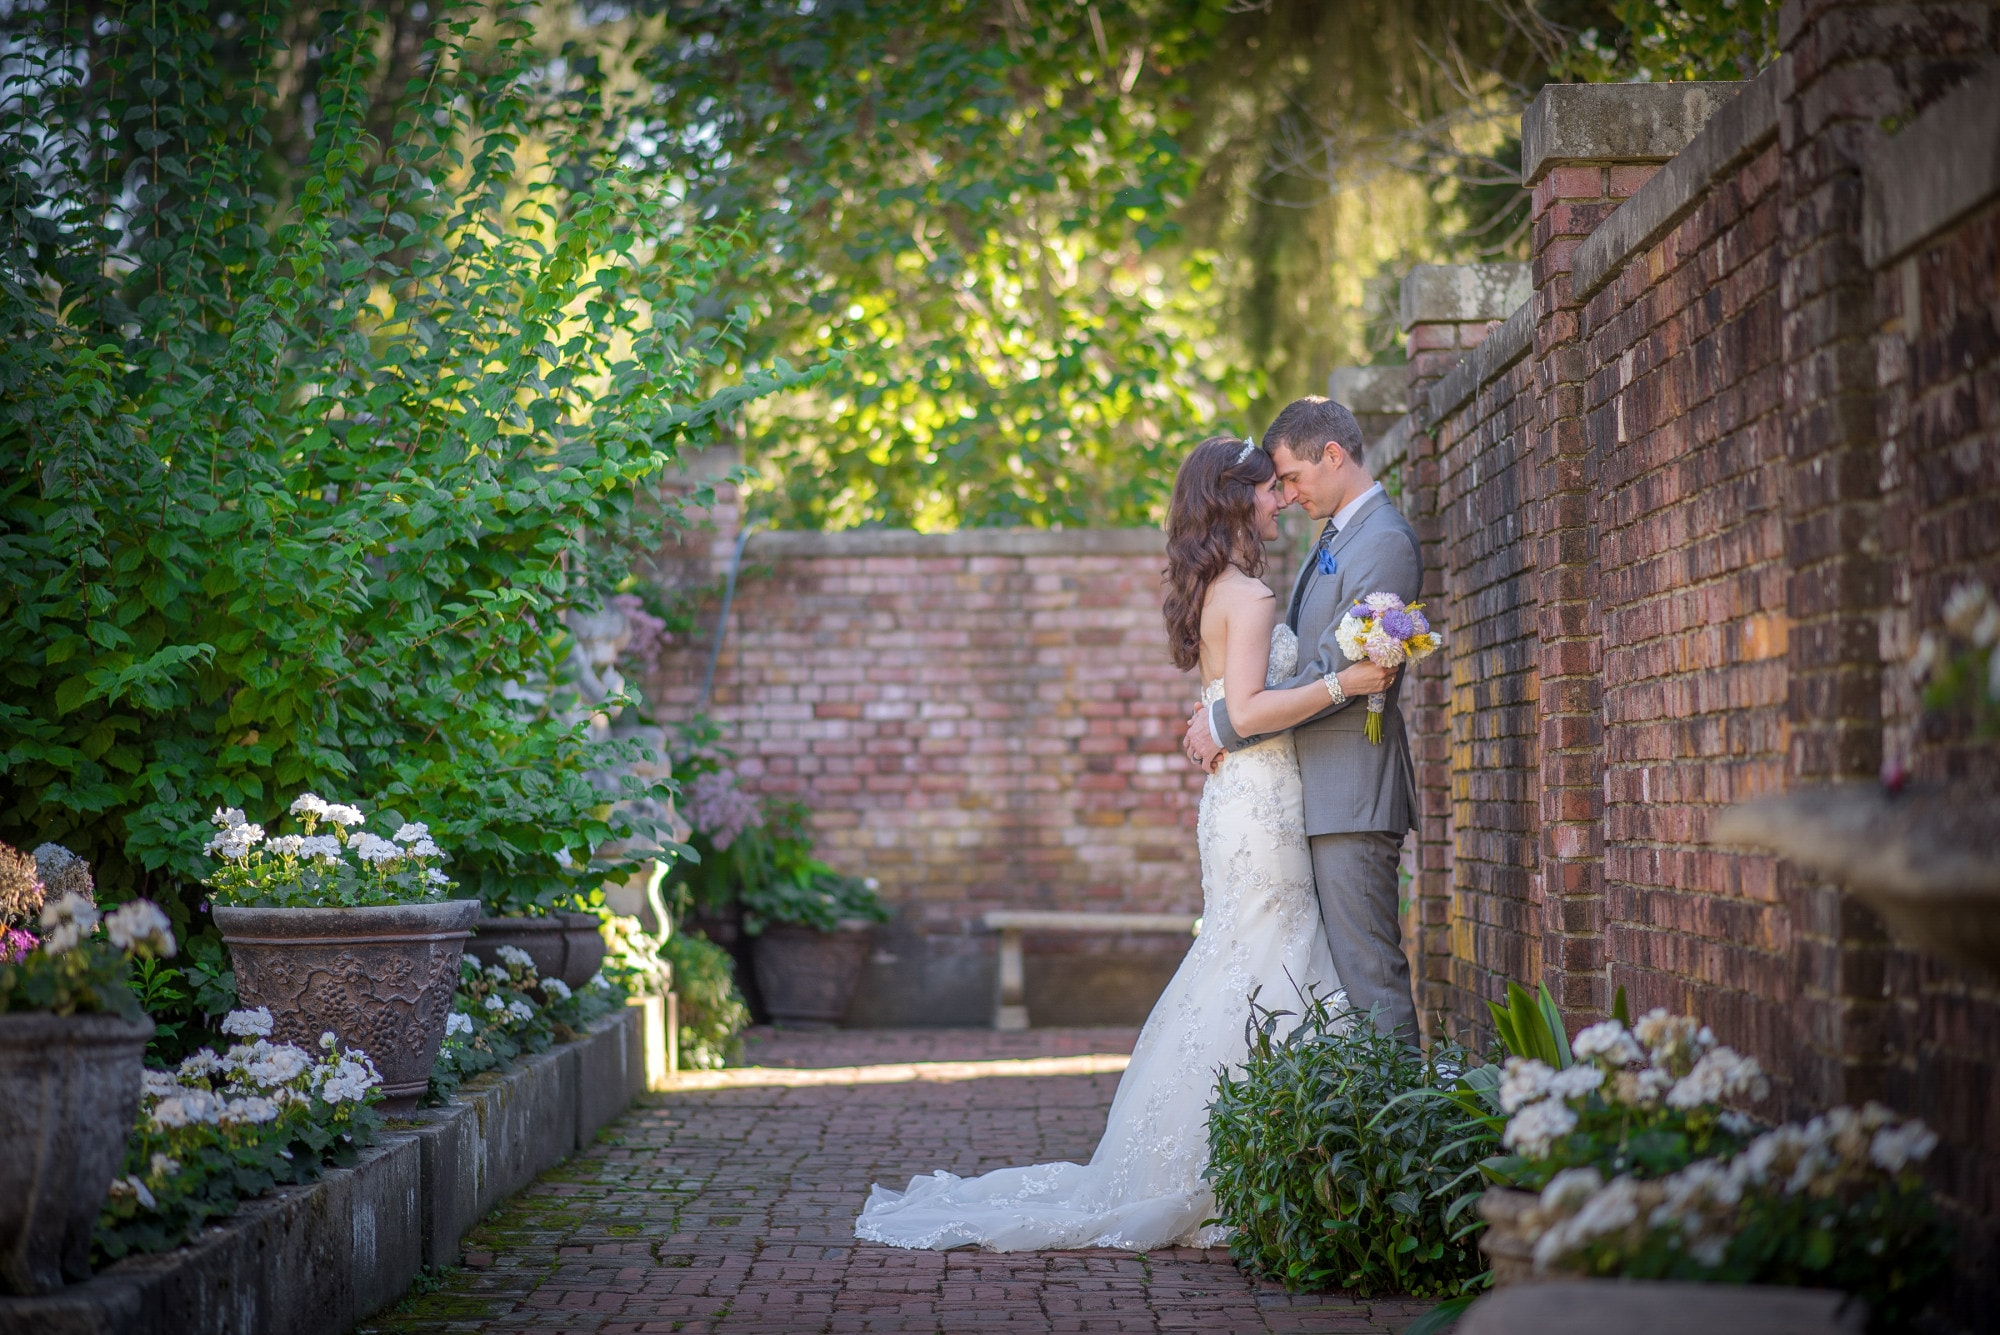 bride and groom standing on brick pathway during daytime